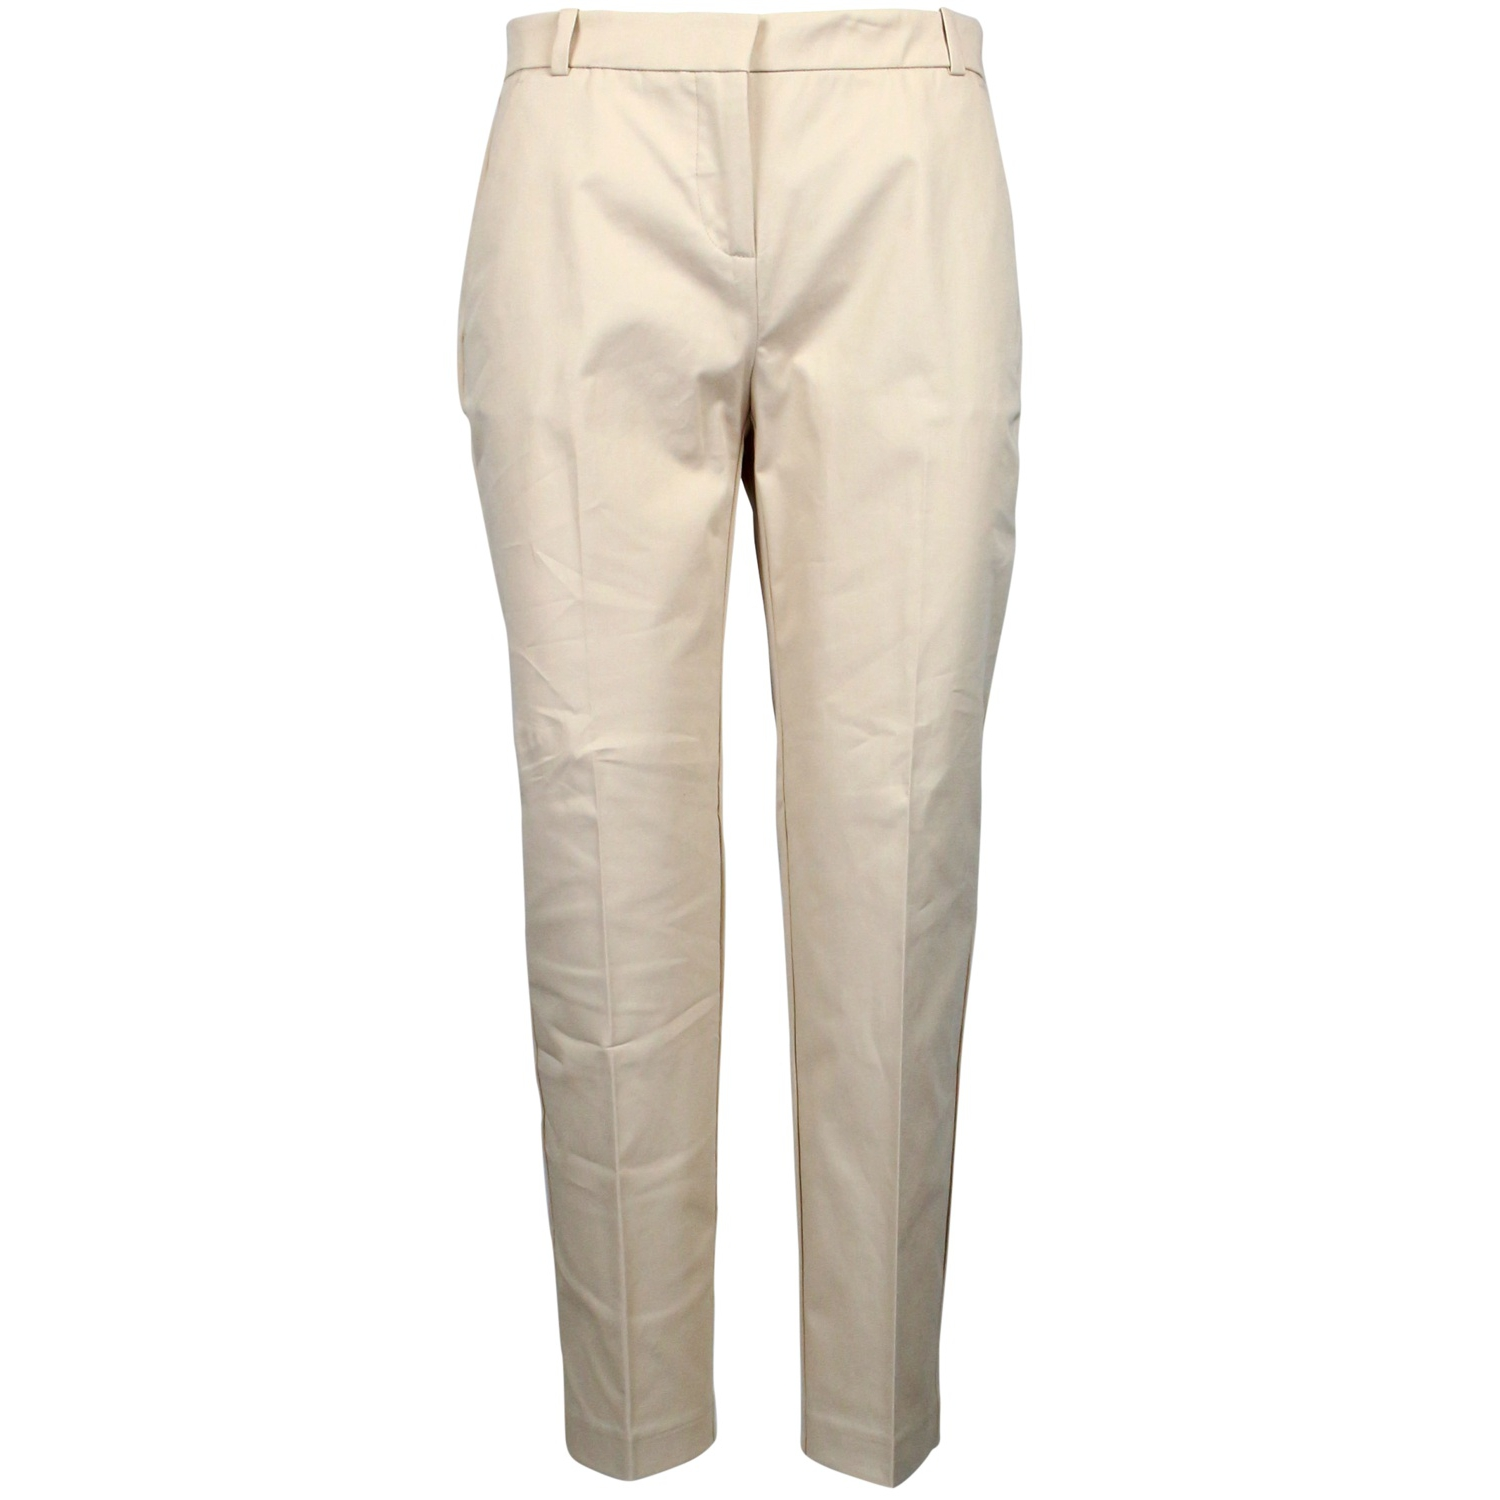 half off 3174d 77220 Pantalone Bello 70